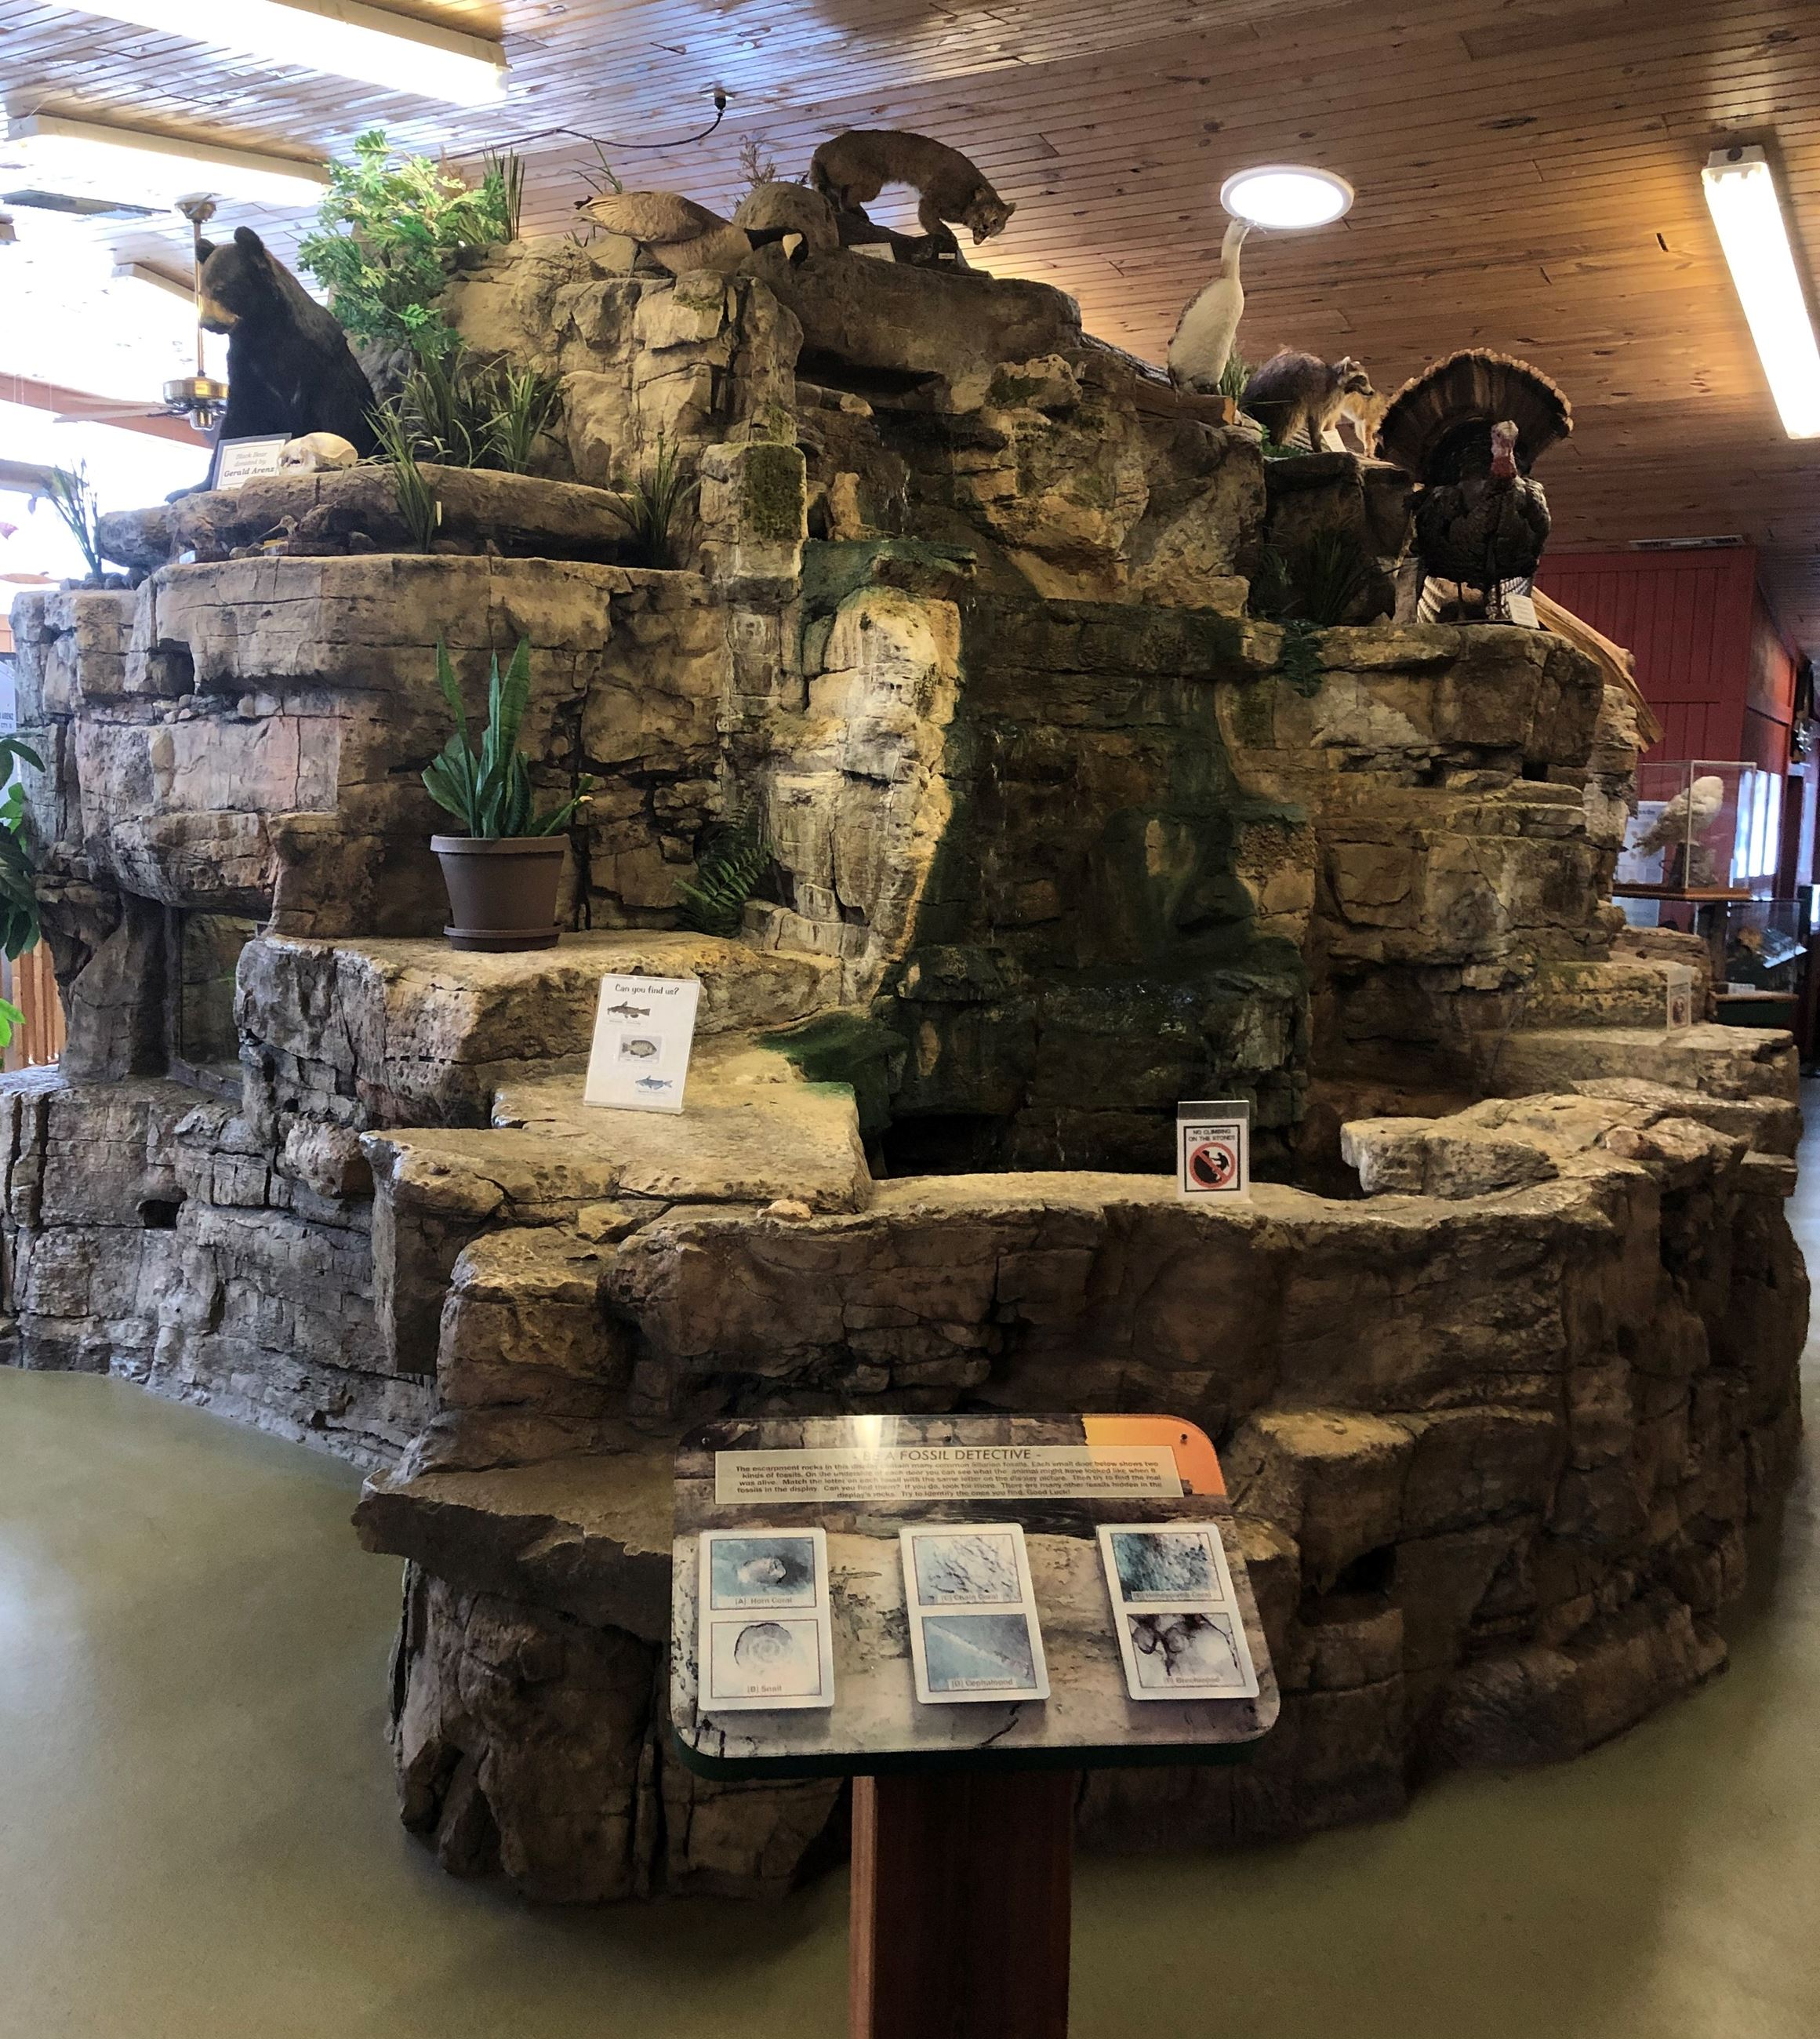 An indoor rock structure with a waterfall and pond. There are taxidermed animals on the rocks.